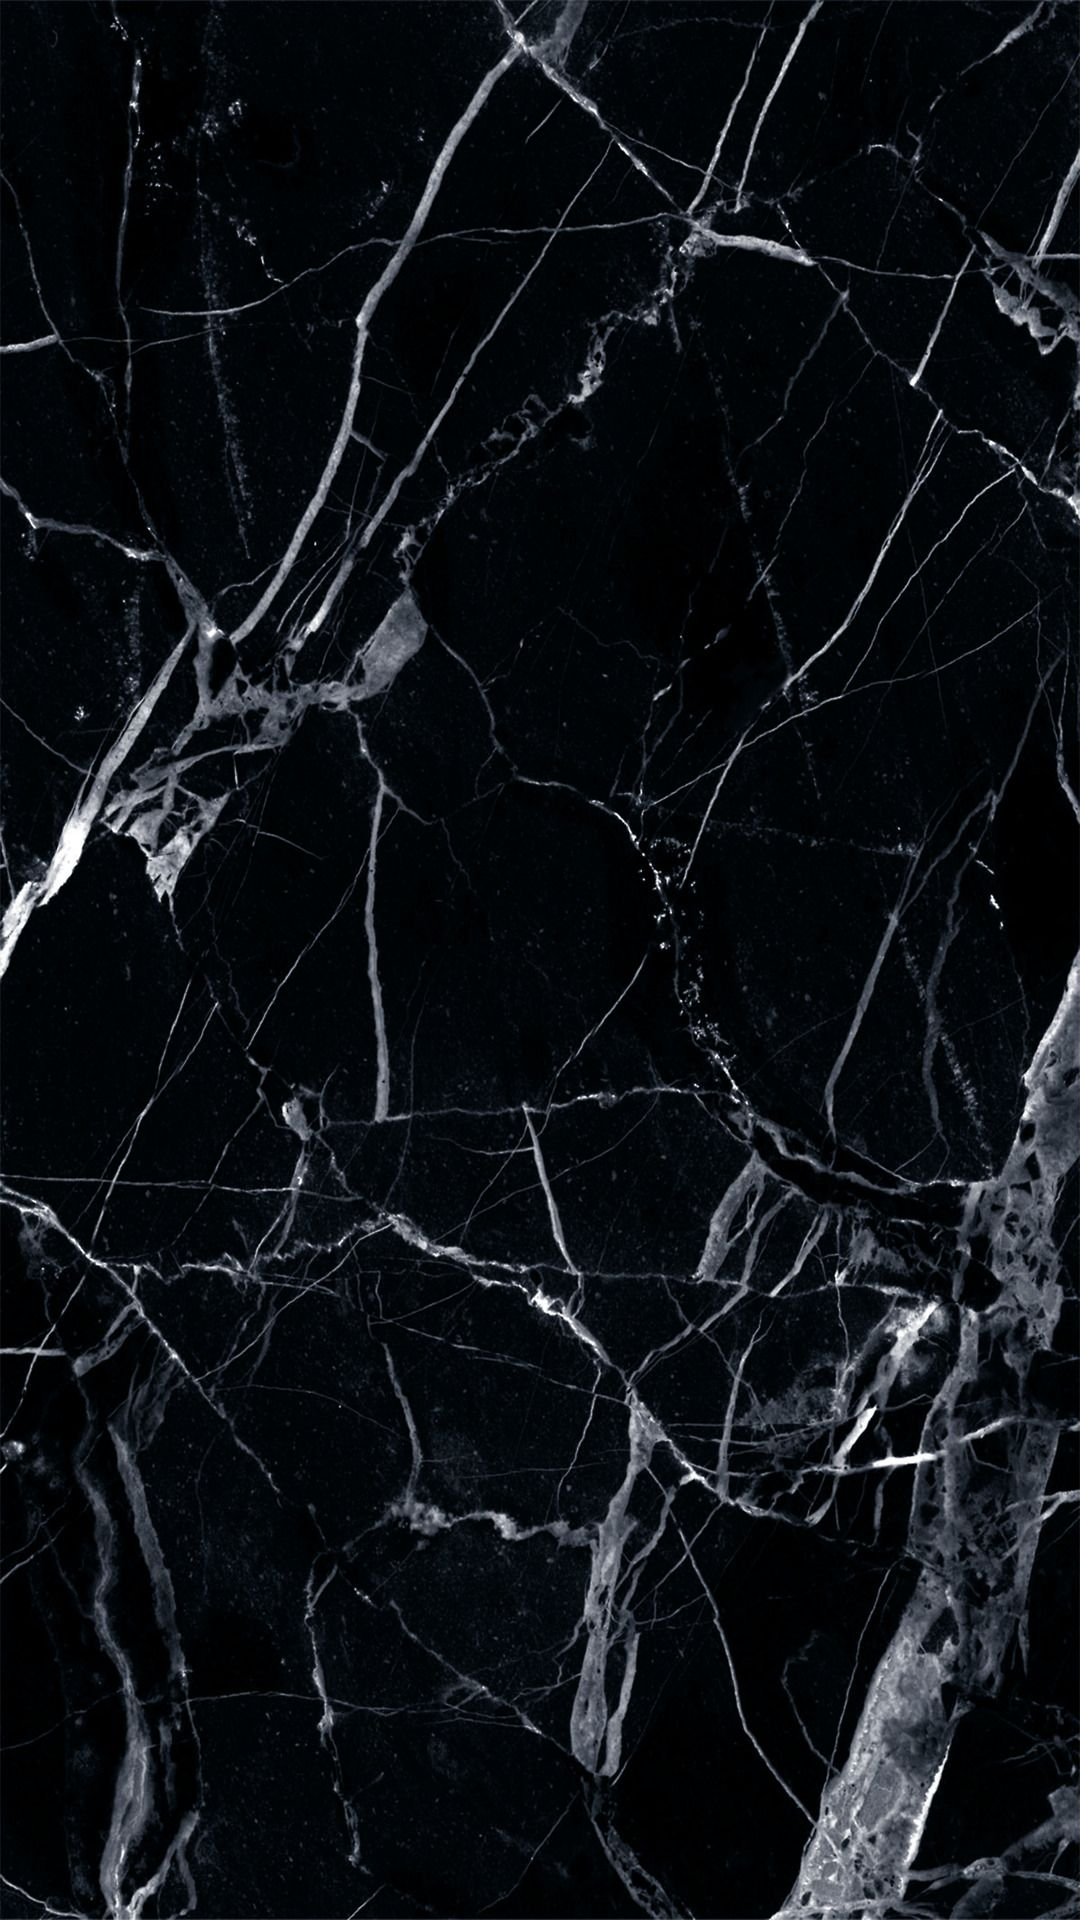 Pin by Mhay on Wallpaper | Marble iphone wallpaper, Screen ...